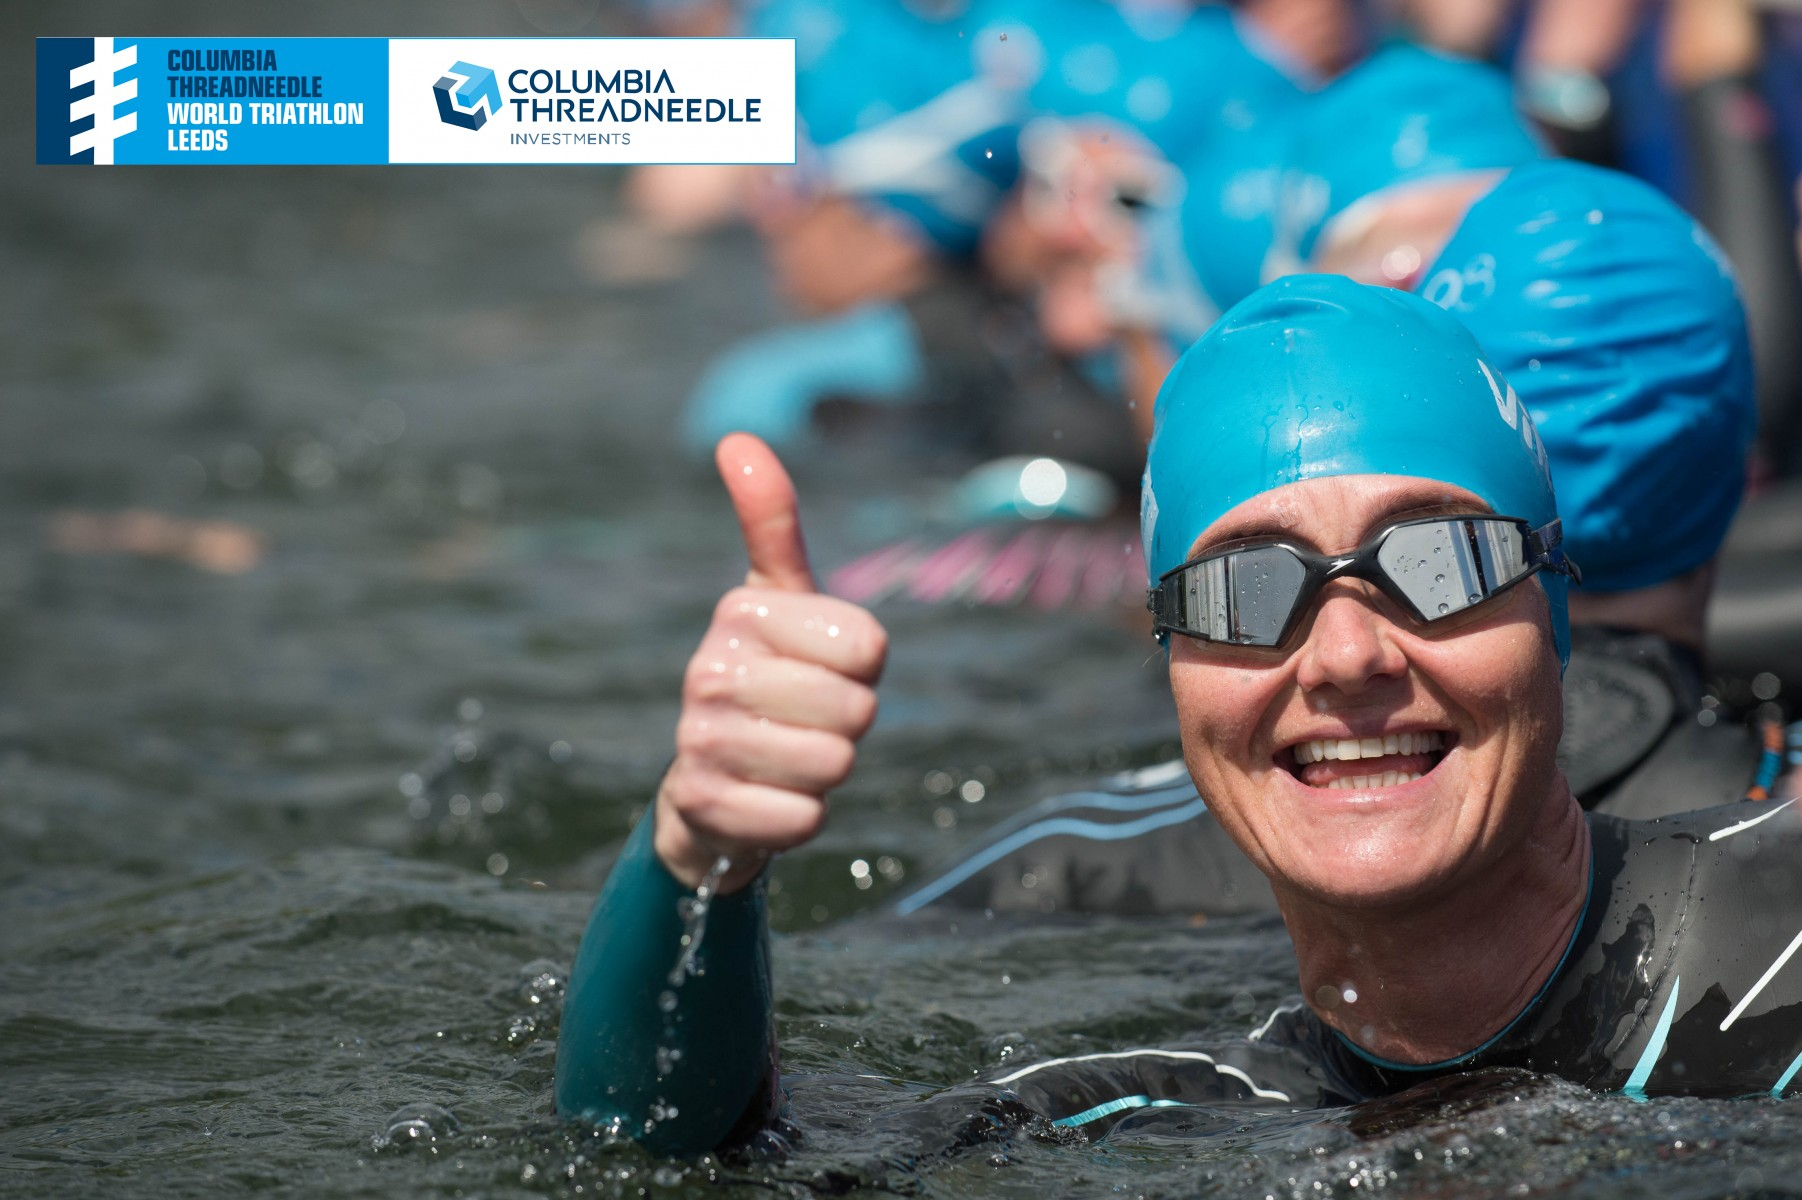 columbia-threadneedle-world-triathlon-leeds---entries-open.jpg